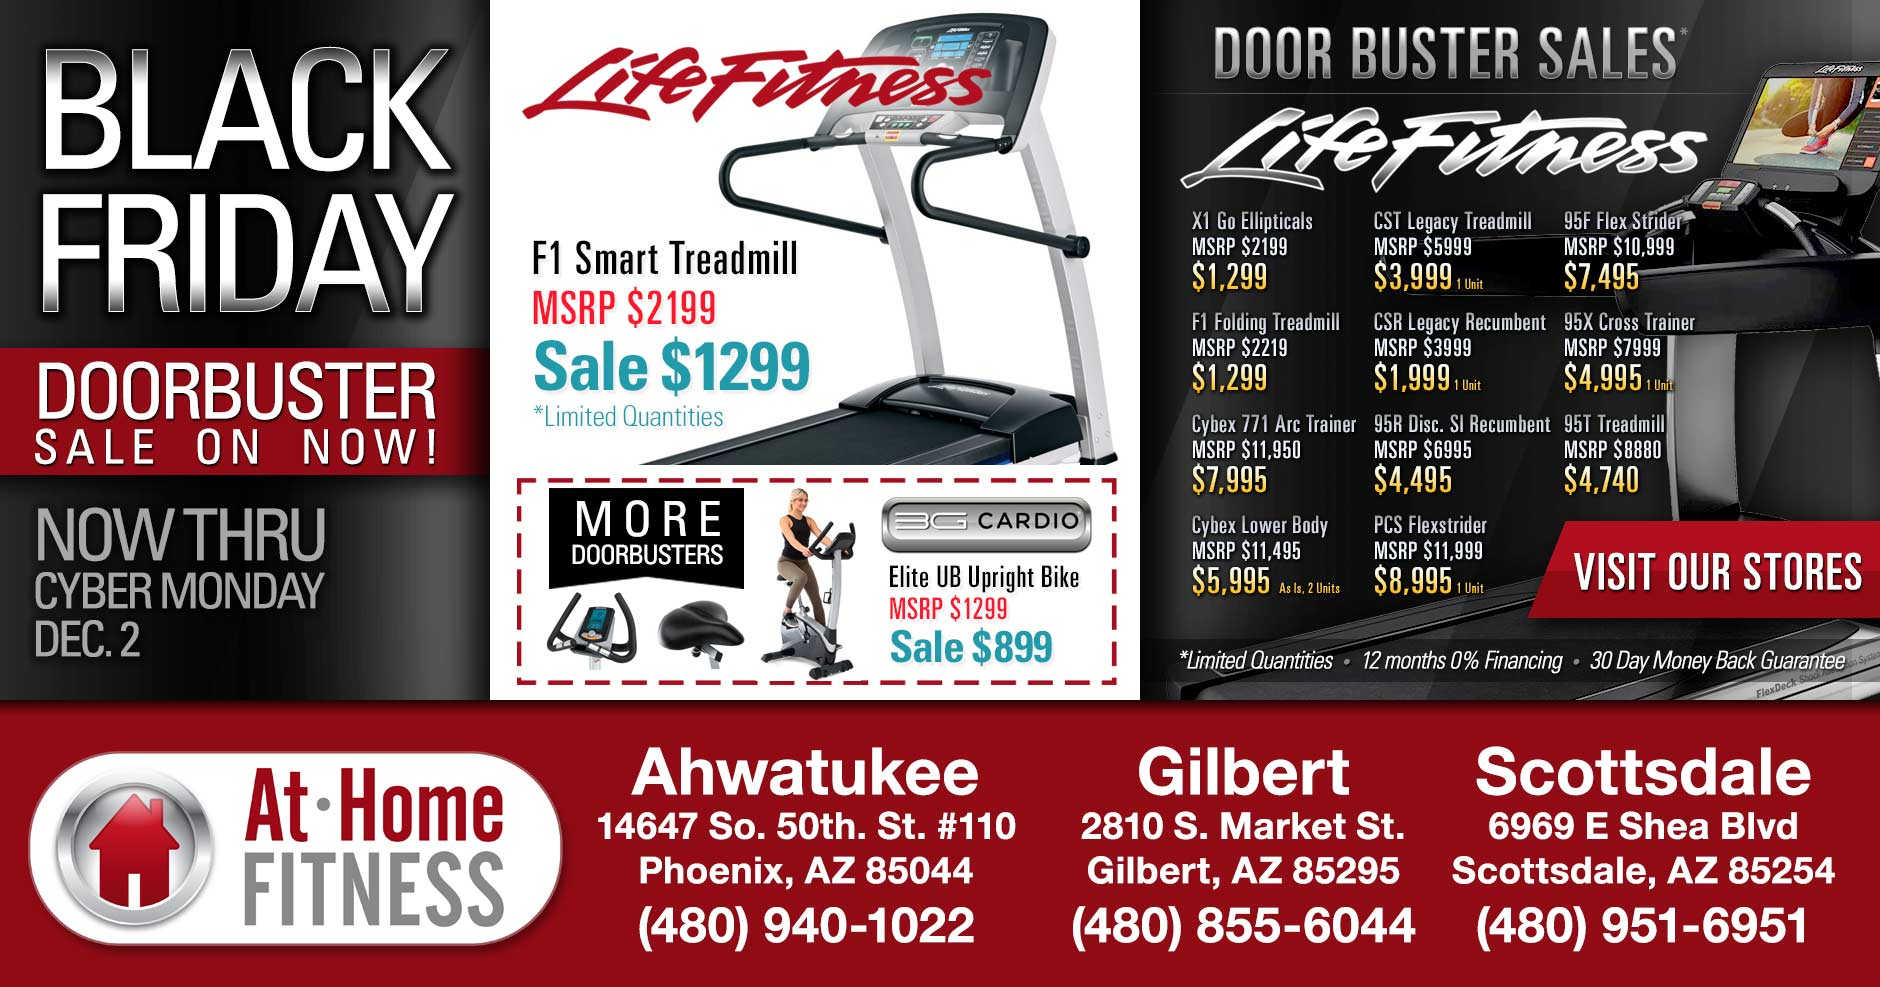 At Home Fitness Black Friday Sale 2019 on now through December 2